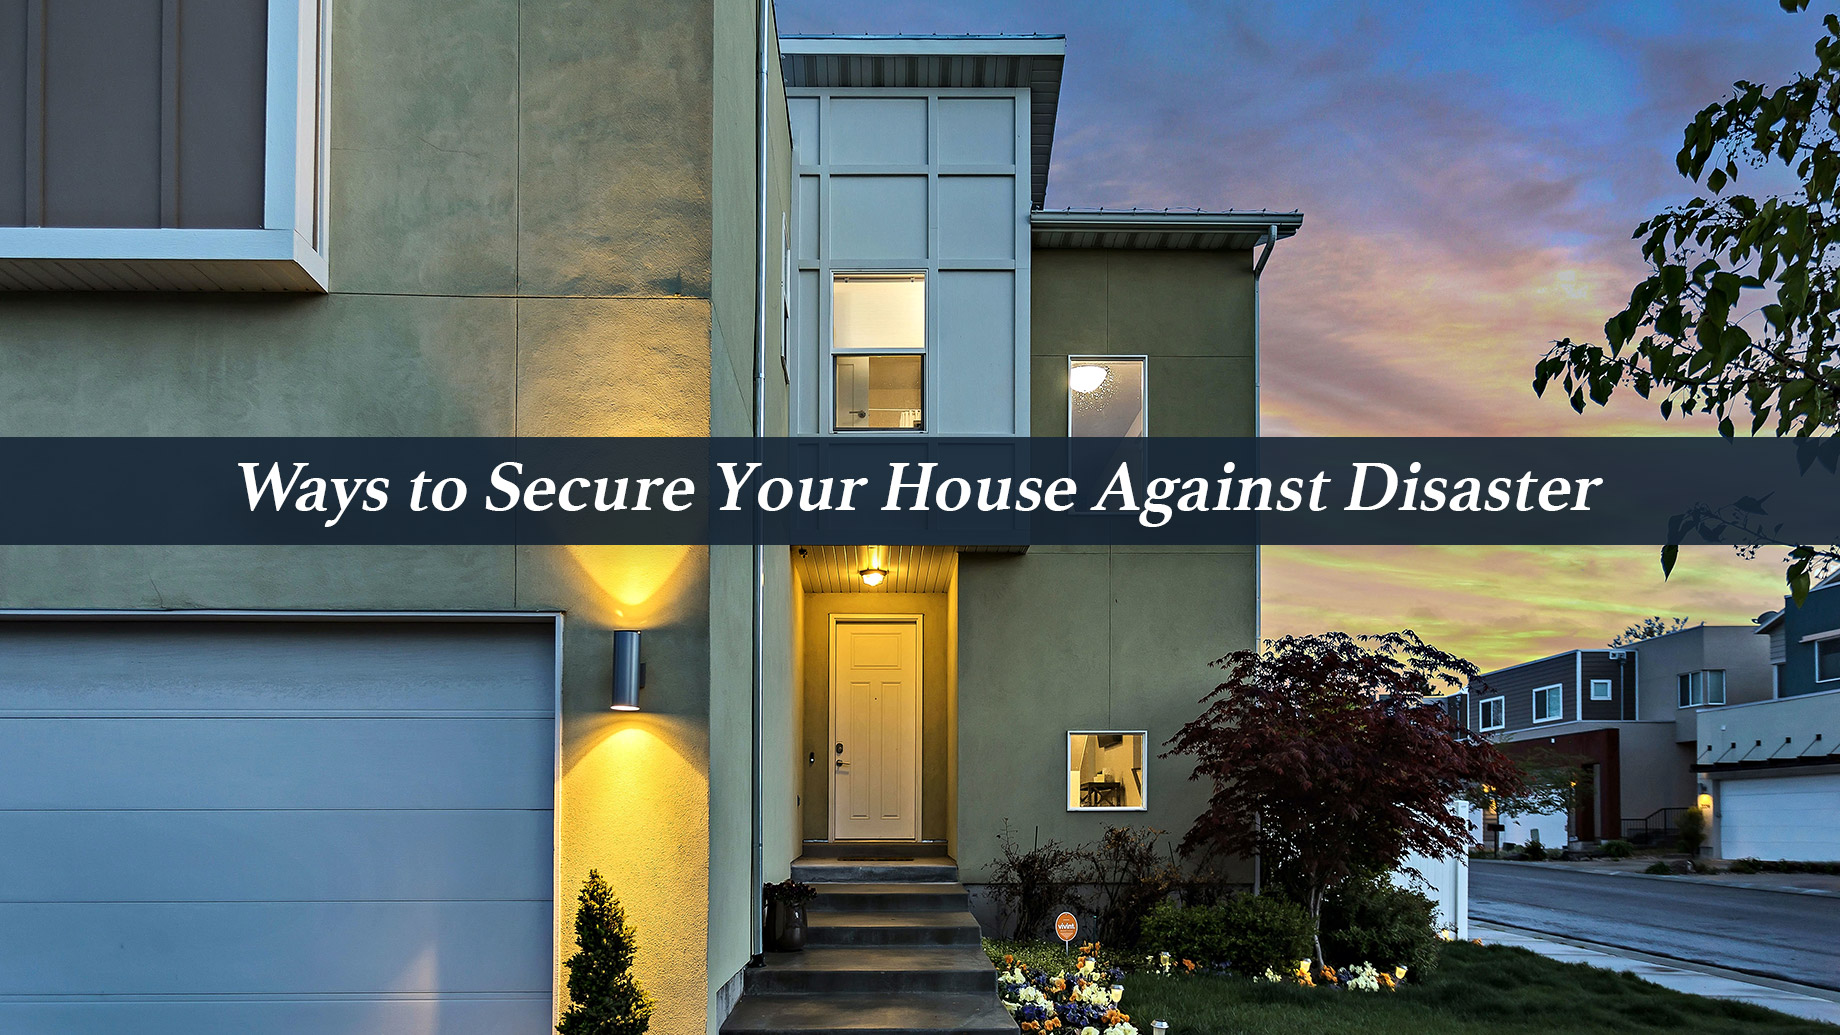 Ways to Secure Your House Against Disaster